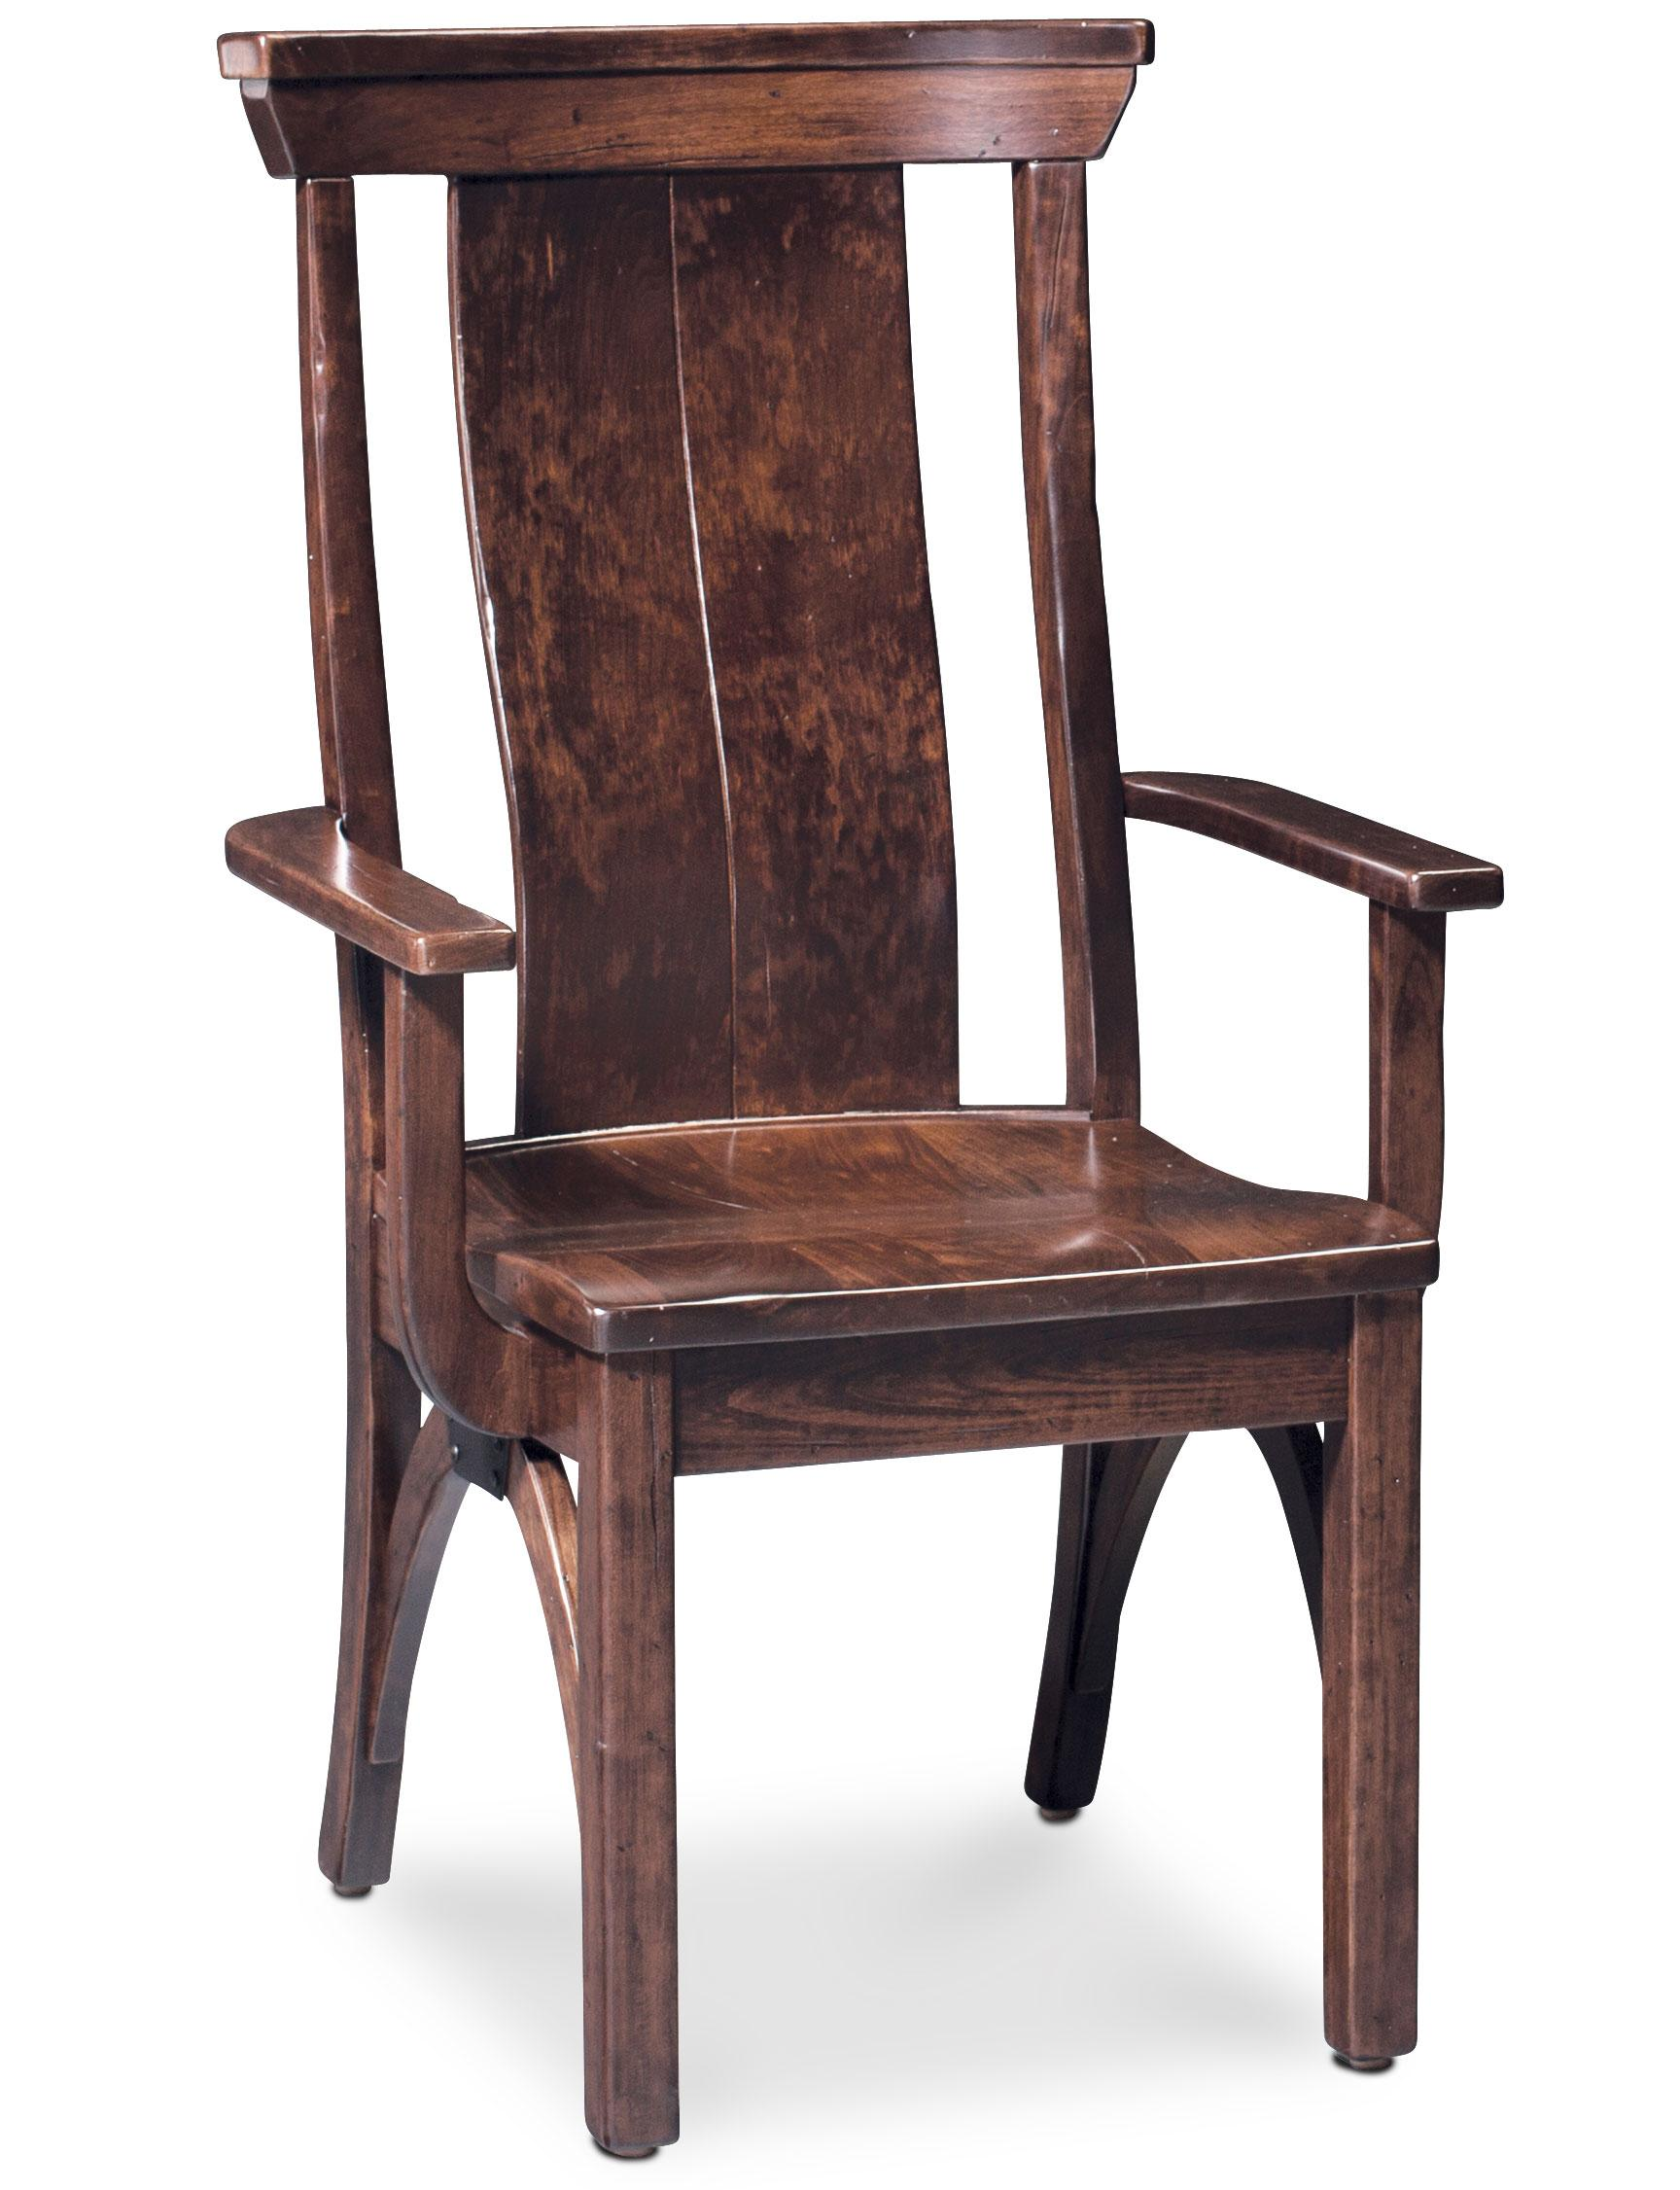 B and O Railroad Trestle Bridge Arm Chair by Simply Amish at Becker Furniture